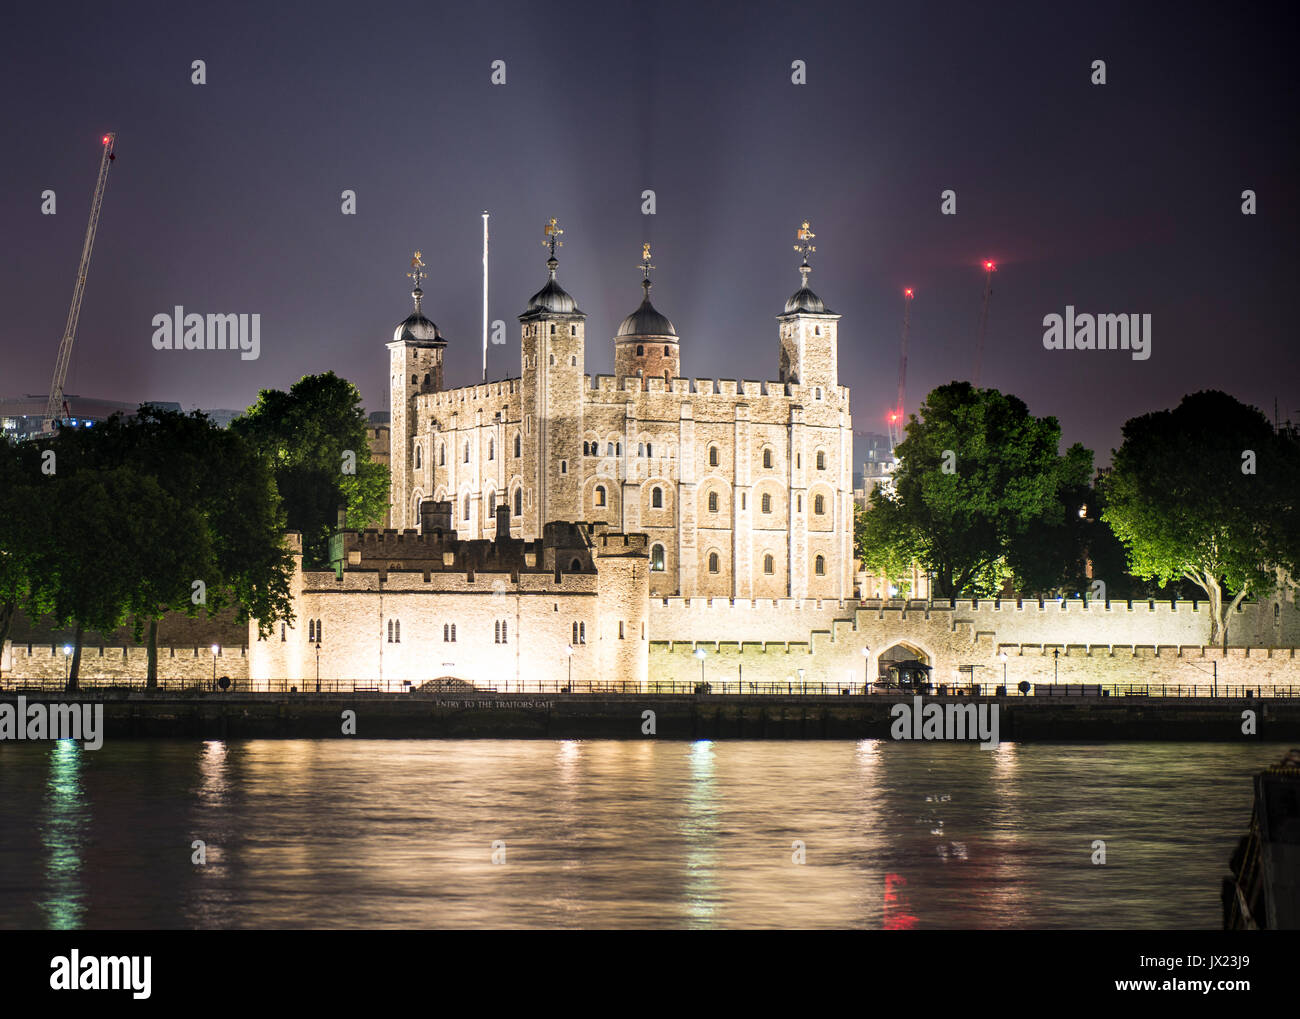 White Tower, Tower of London, night shot, London, England, United Kingdom - Stock Image